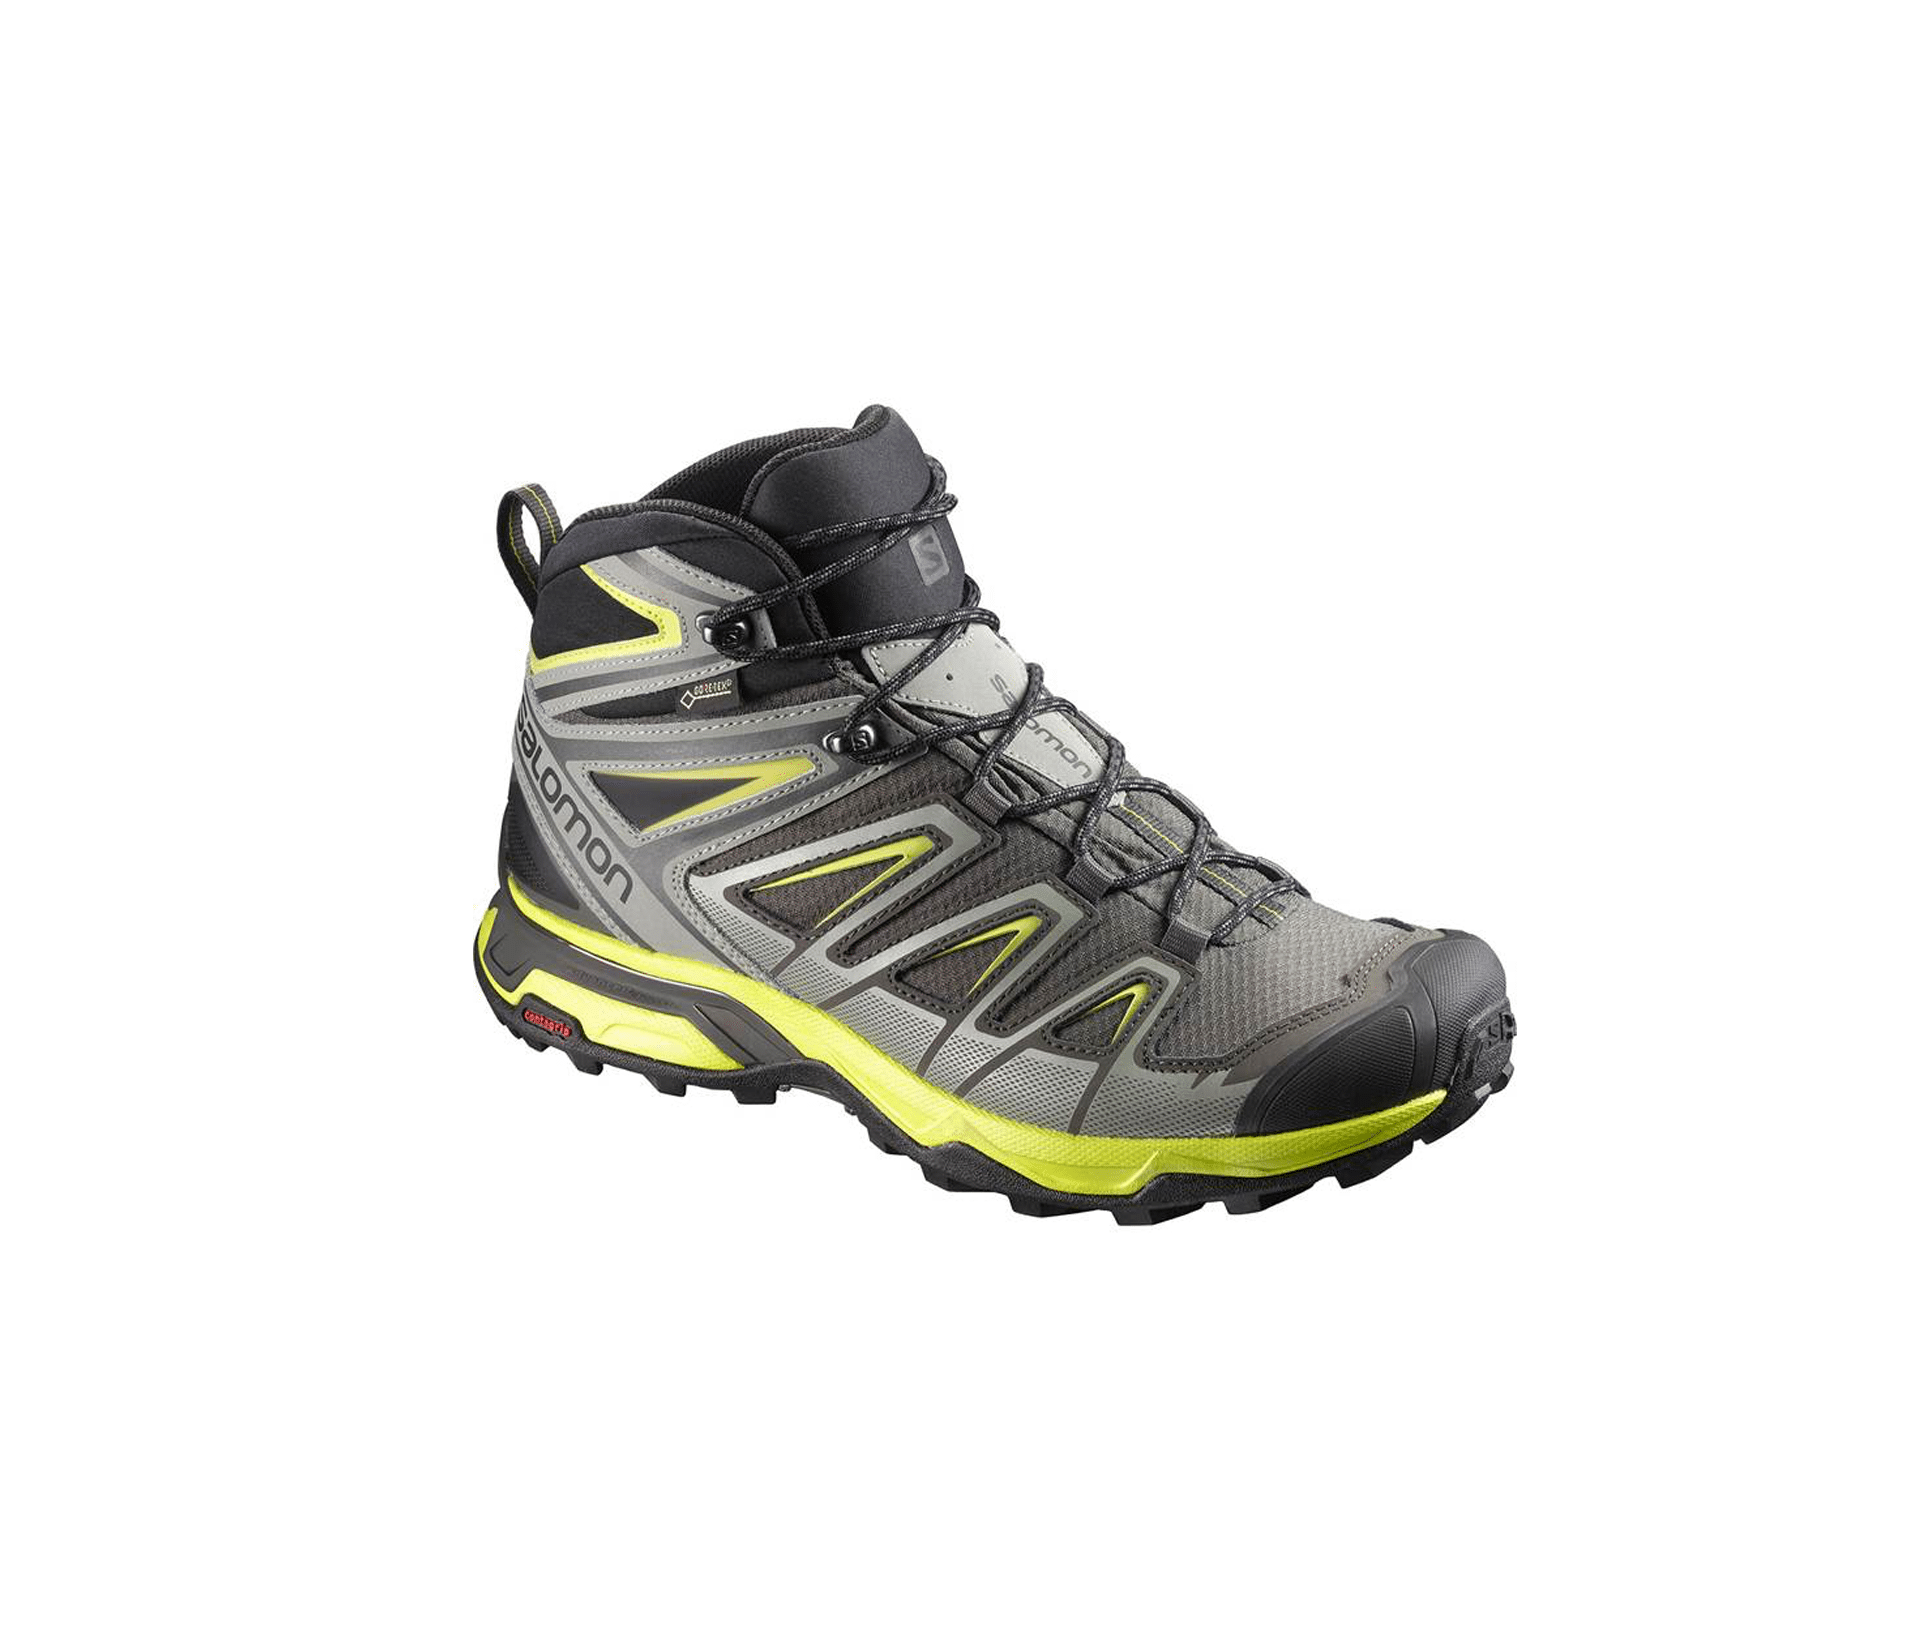 Salomon GORE-TEX Men's Hiking Boots